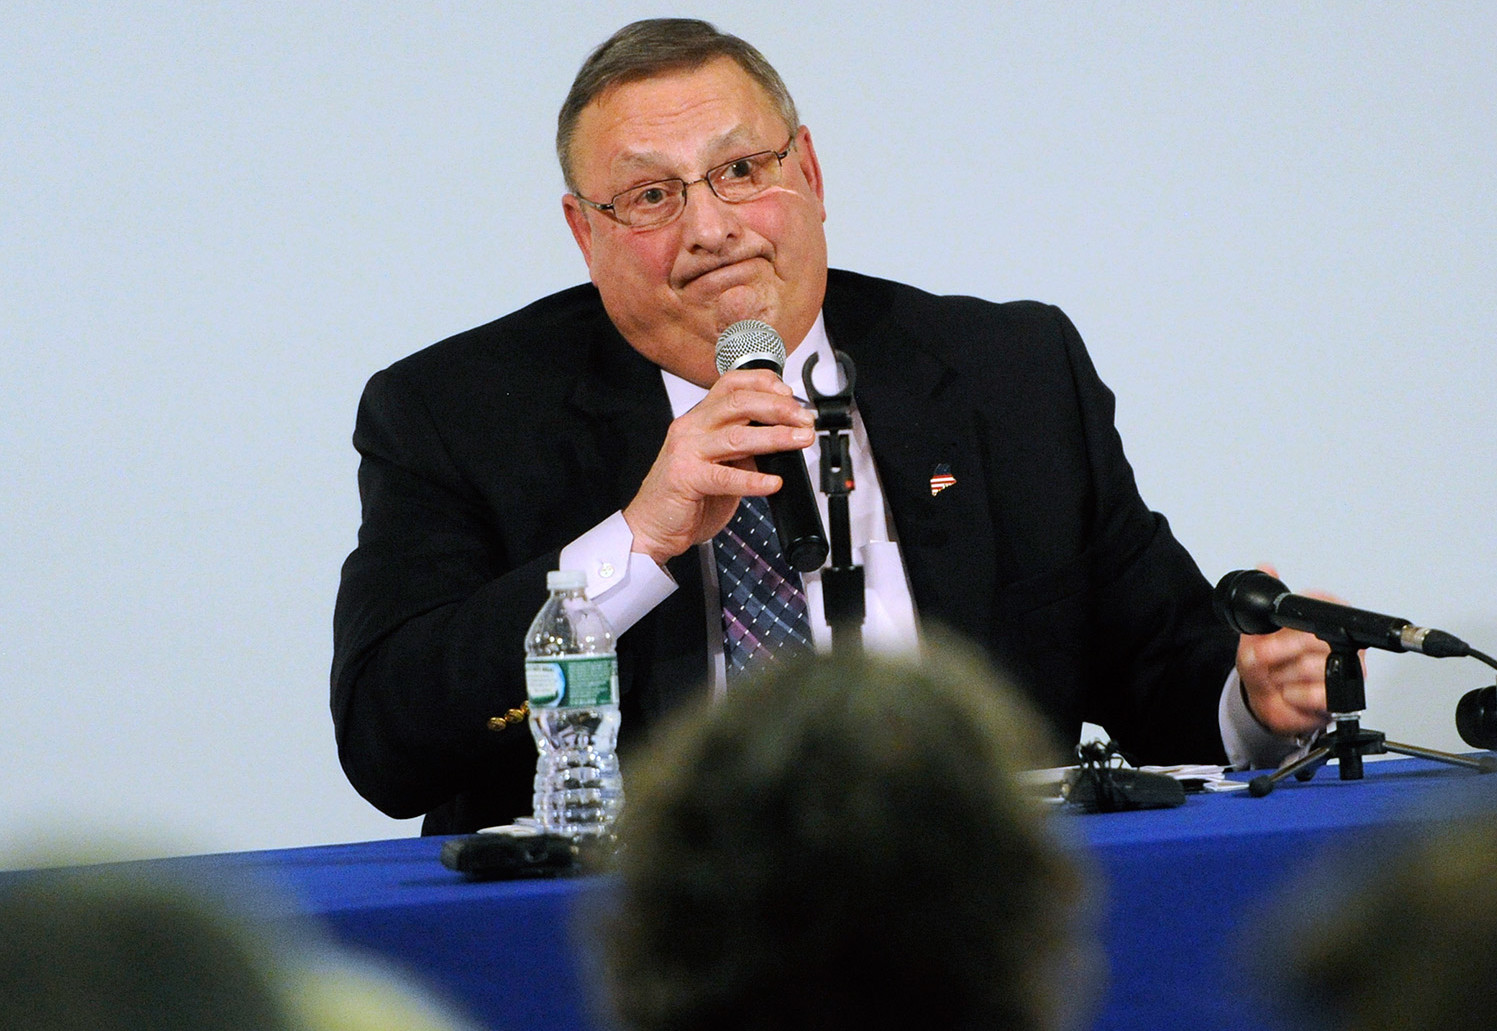 Gov. Paul LePage told Rep. Sara Gideon that her superiors in the Legislature should work with him.